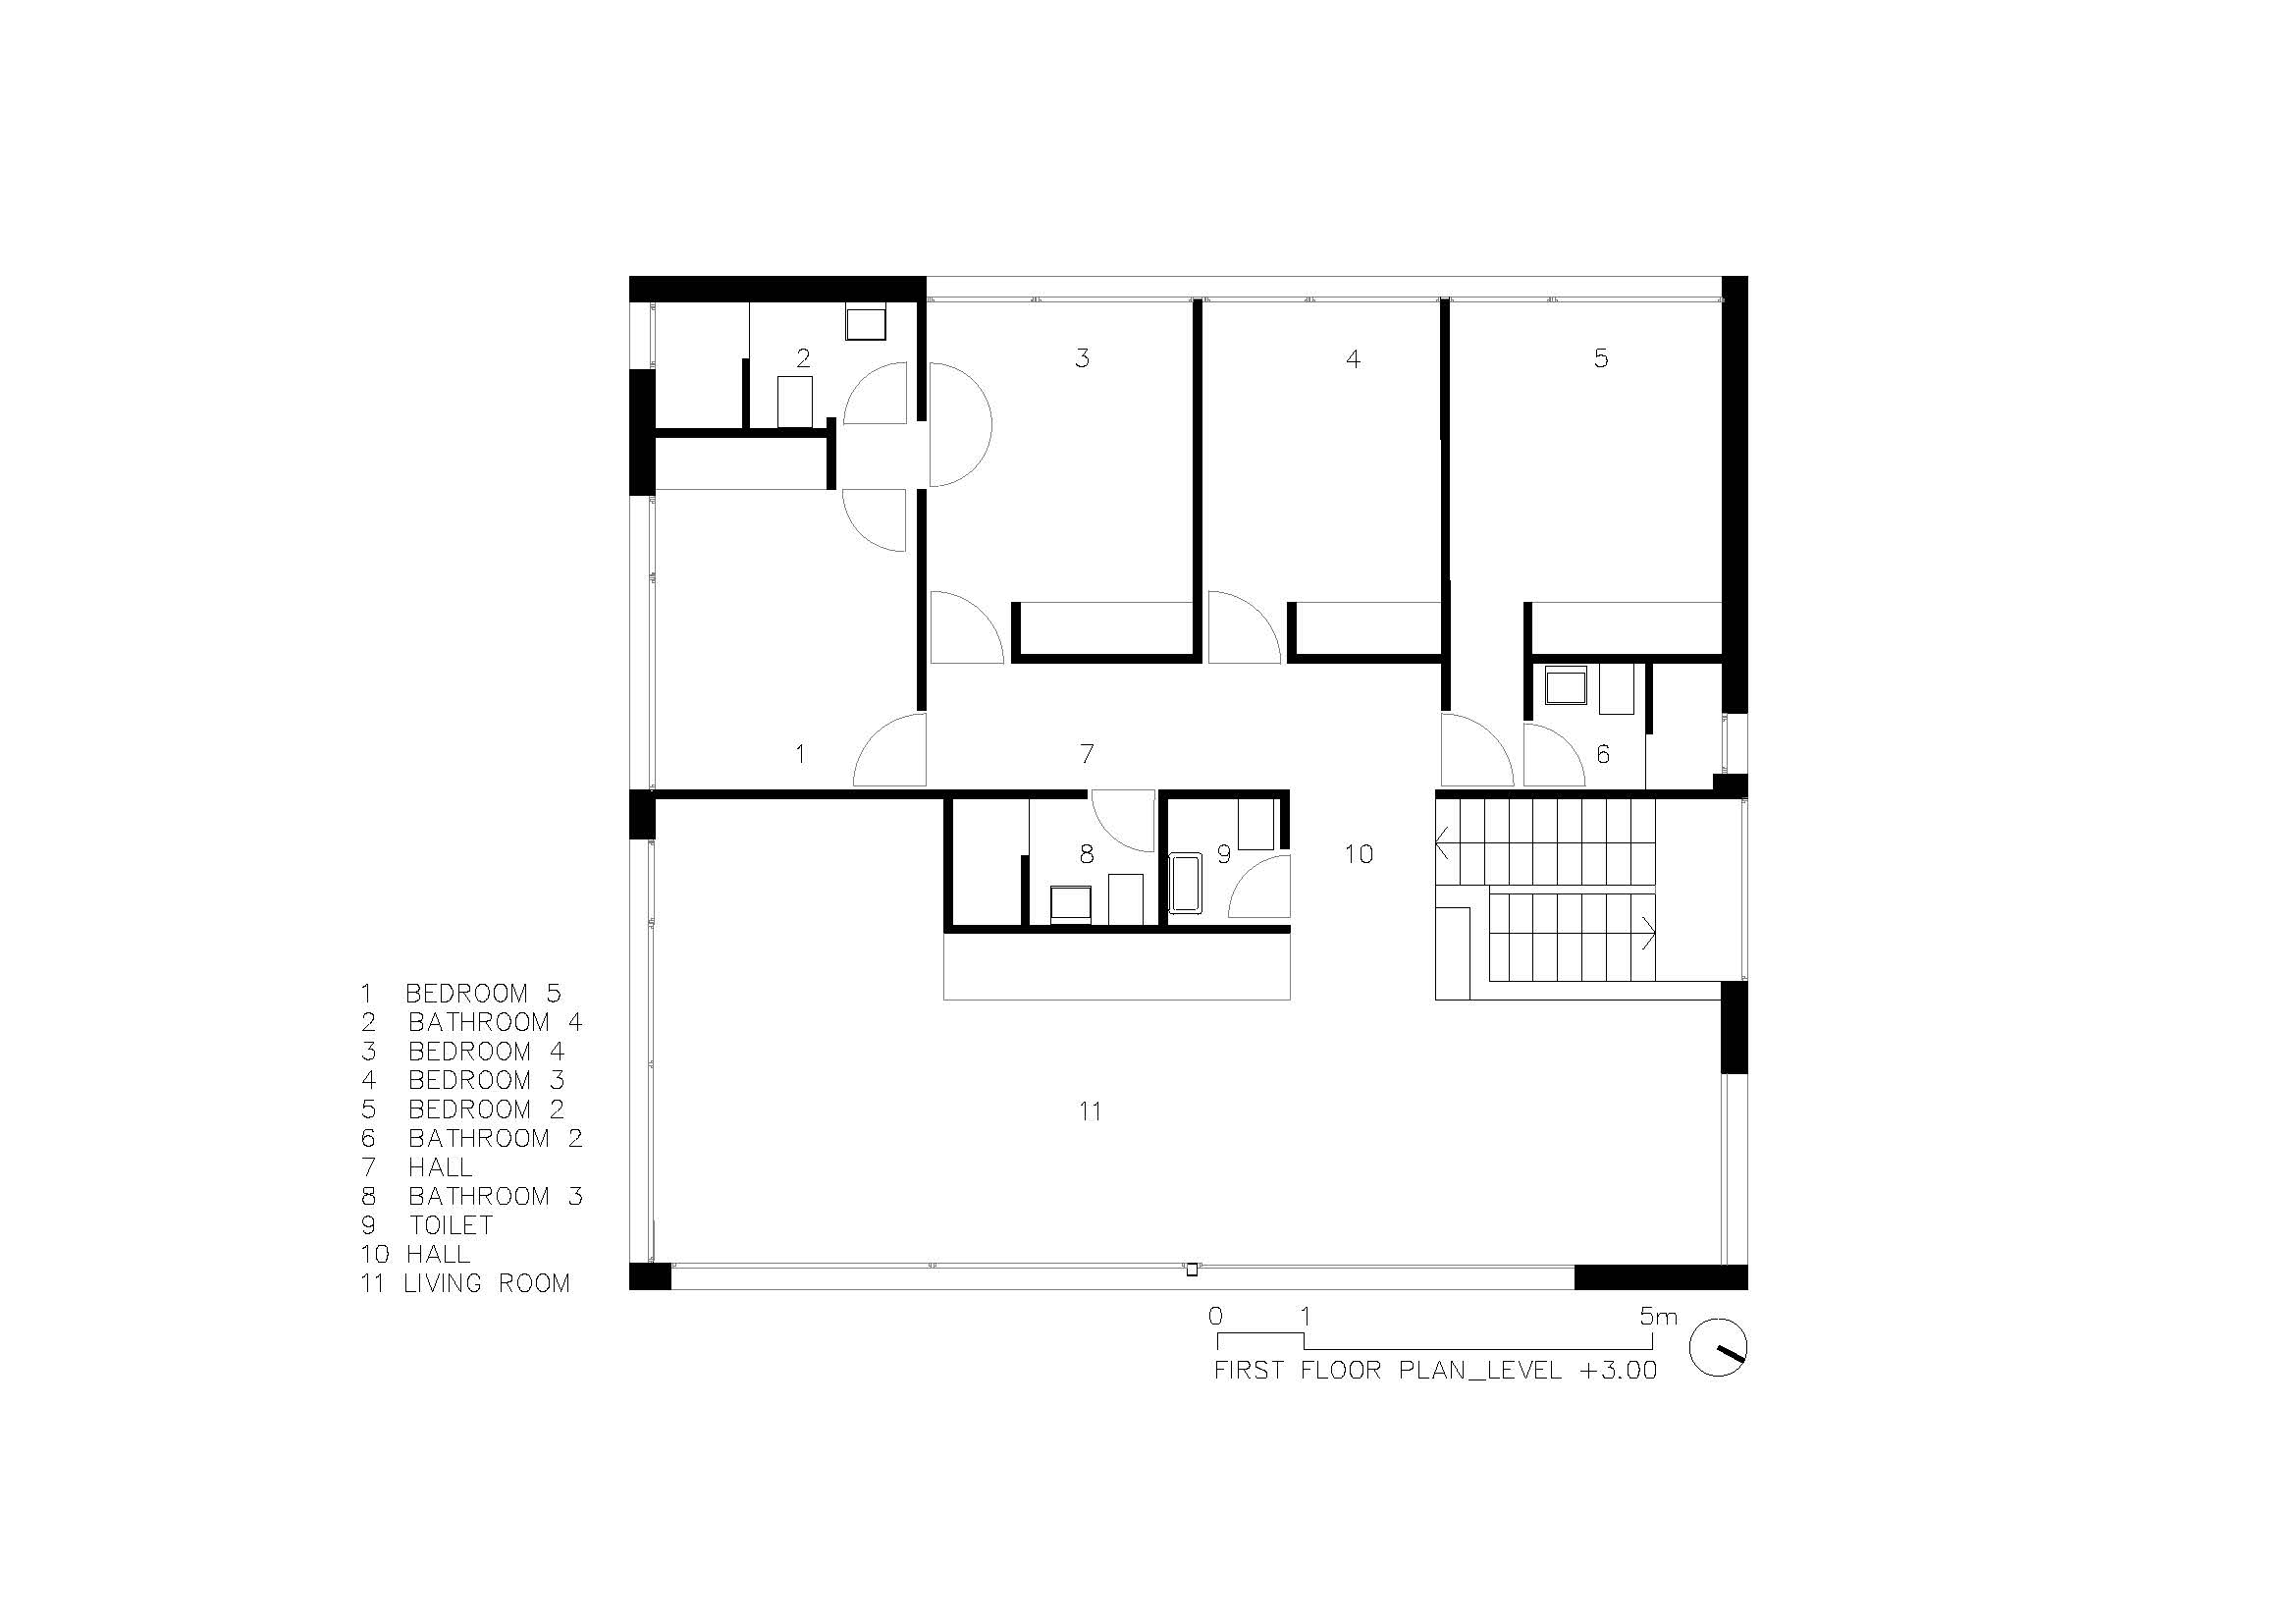 4-FIRST FLOOR PLAN